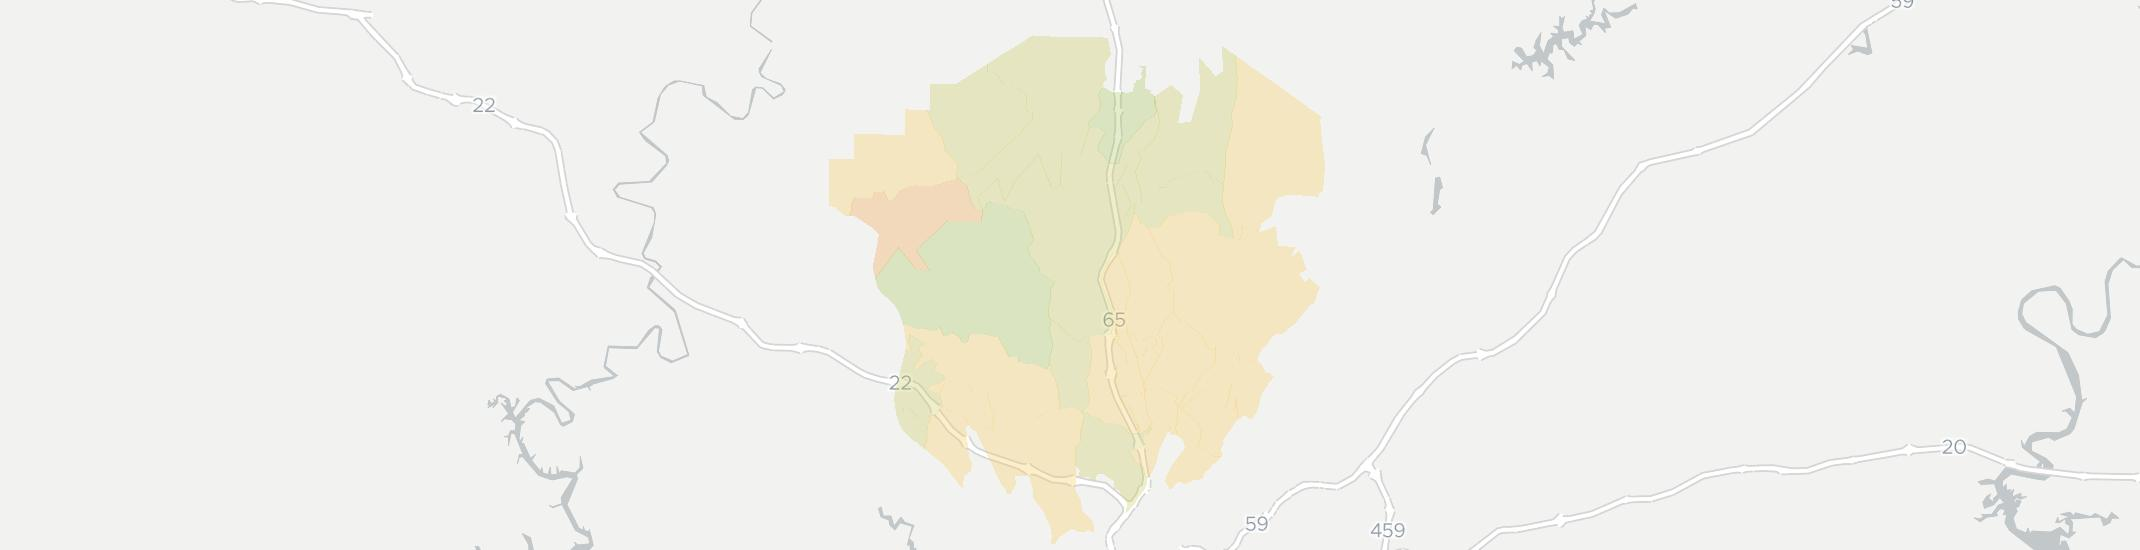 Gardendale Internet Competition Map. Click for interactive map.